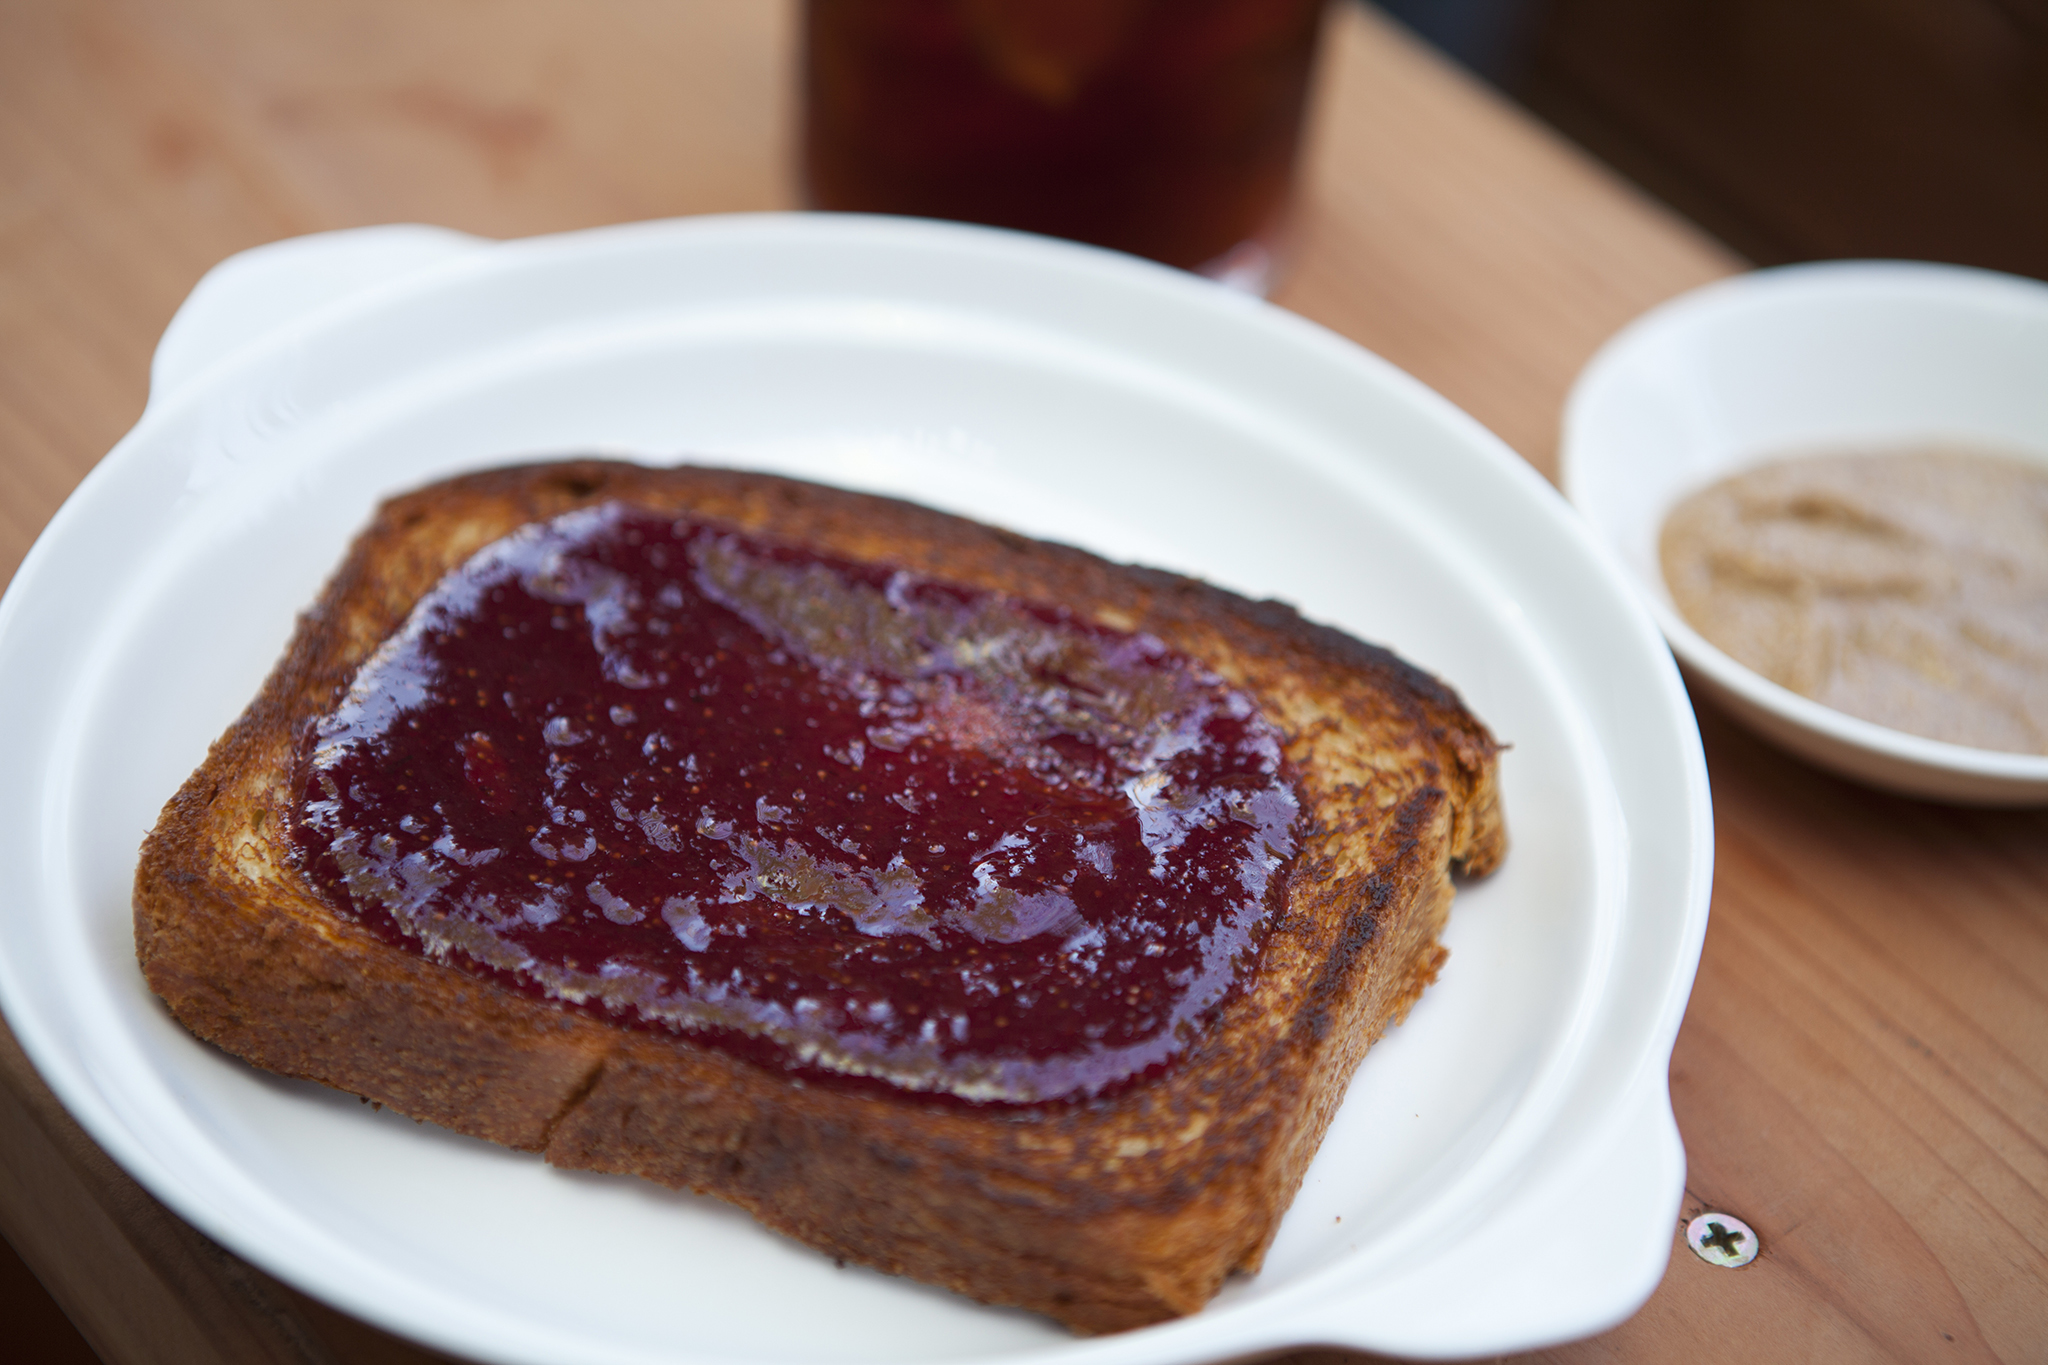 5 things to know about the moldy jam and allegations at one of L.A.'s biggest restaurants